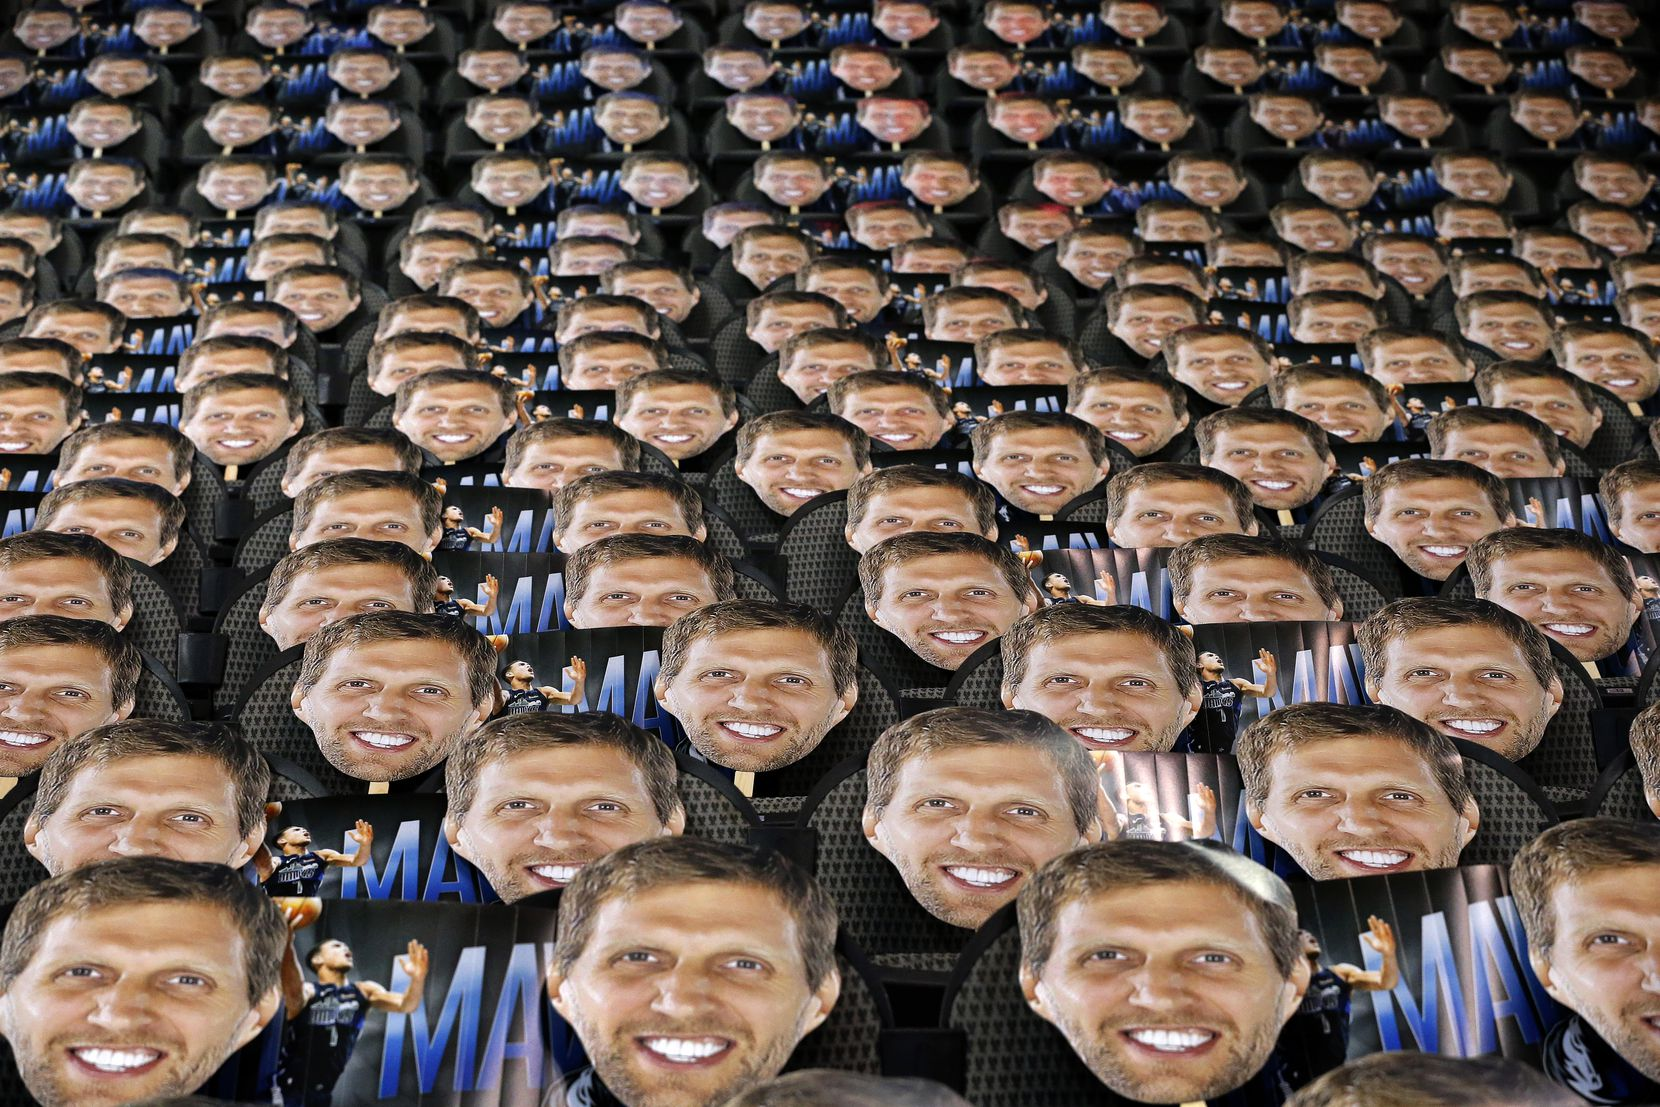 The Dallas Mavericks placed cutouts of Dirk Nowitzk's face on each seat behind both baskets at the American Airlines Center in Dallas on April 5. The team passed them out to be used as a distraction to opposing players shooting free throws.